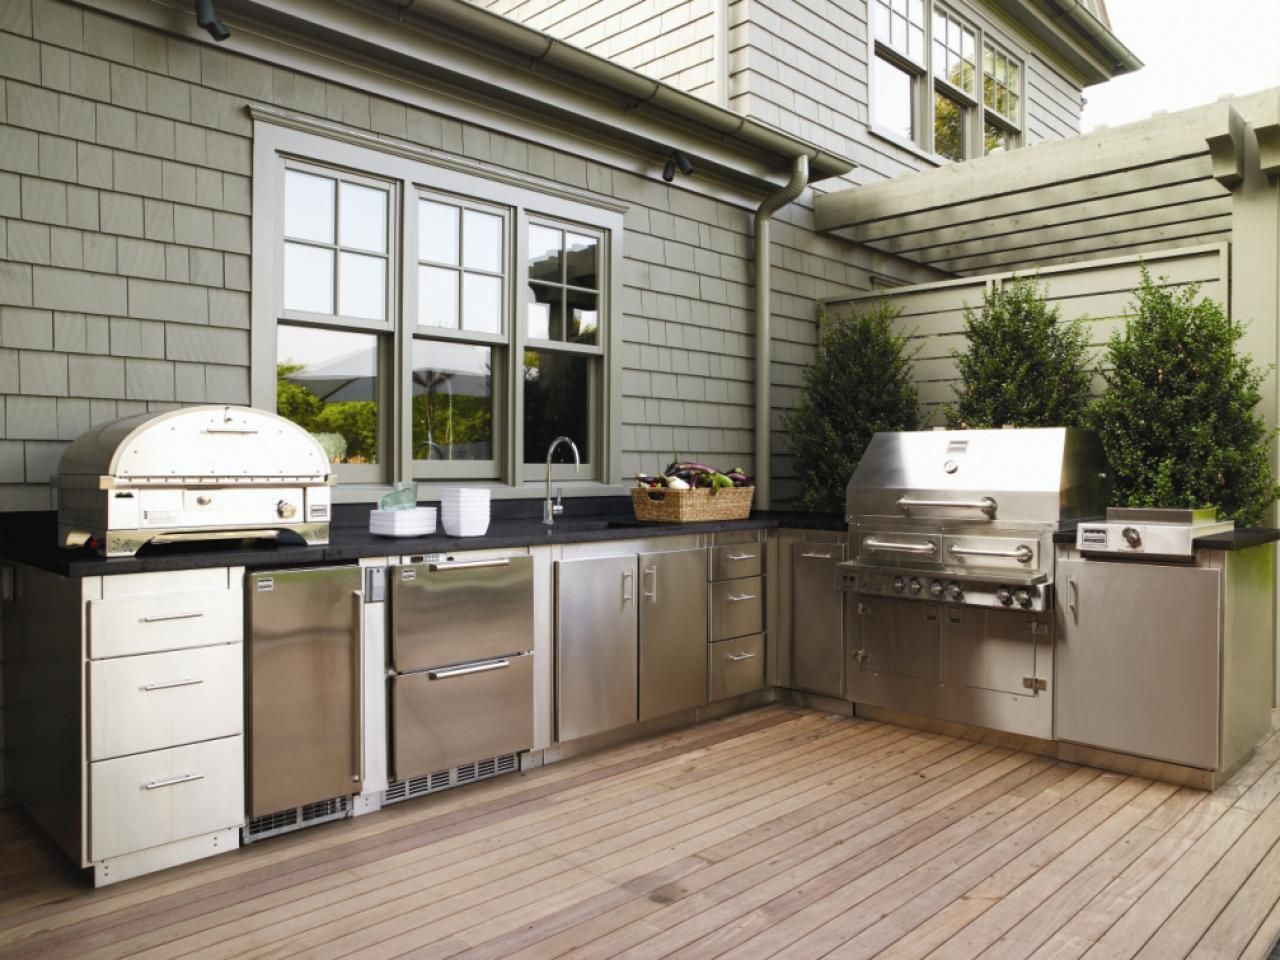 diy-outdoor-kitchen-1